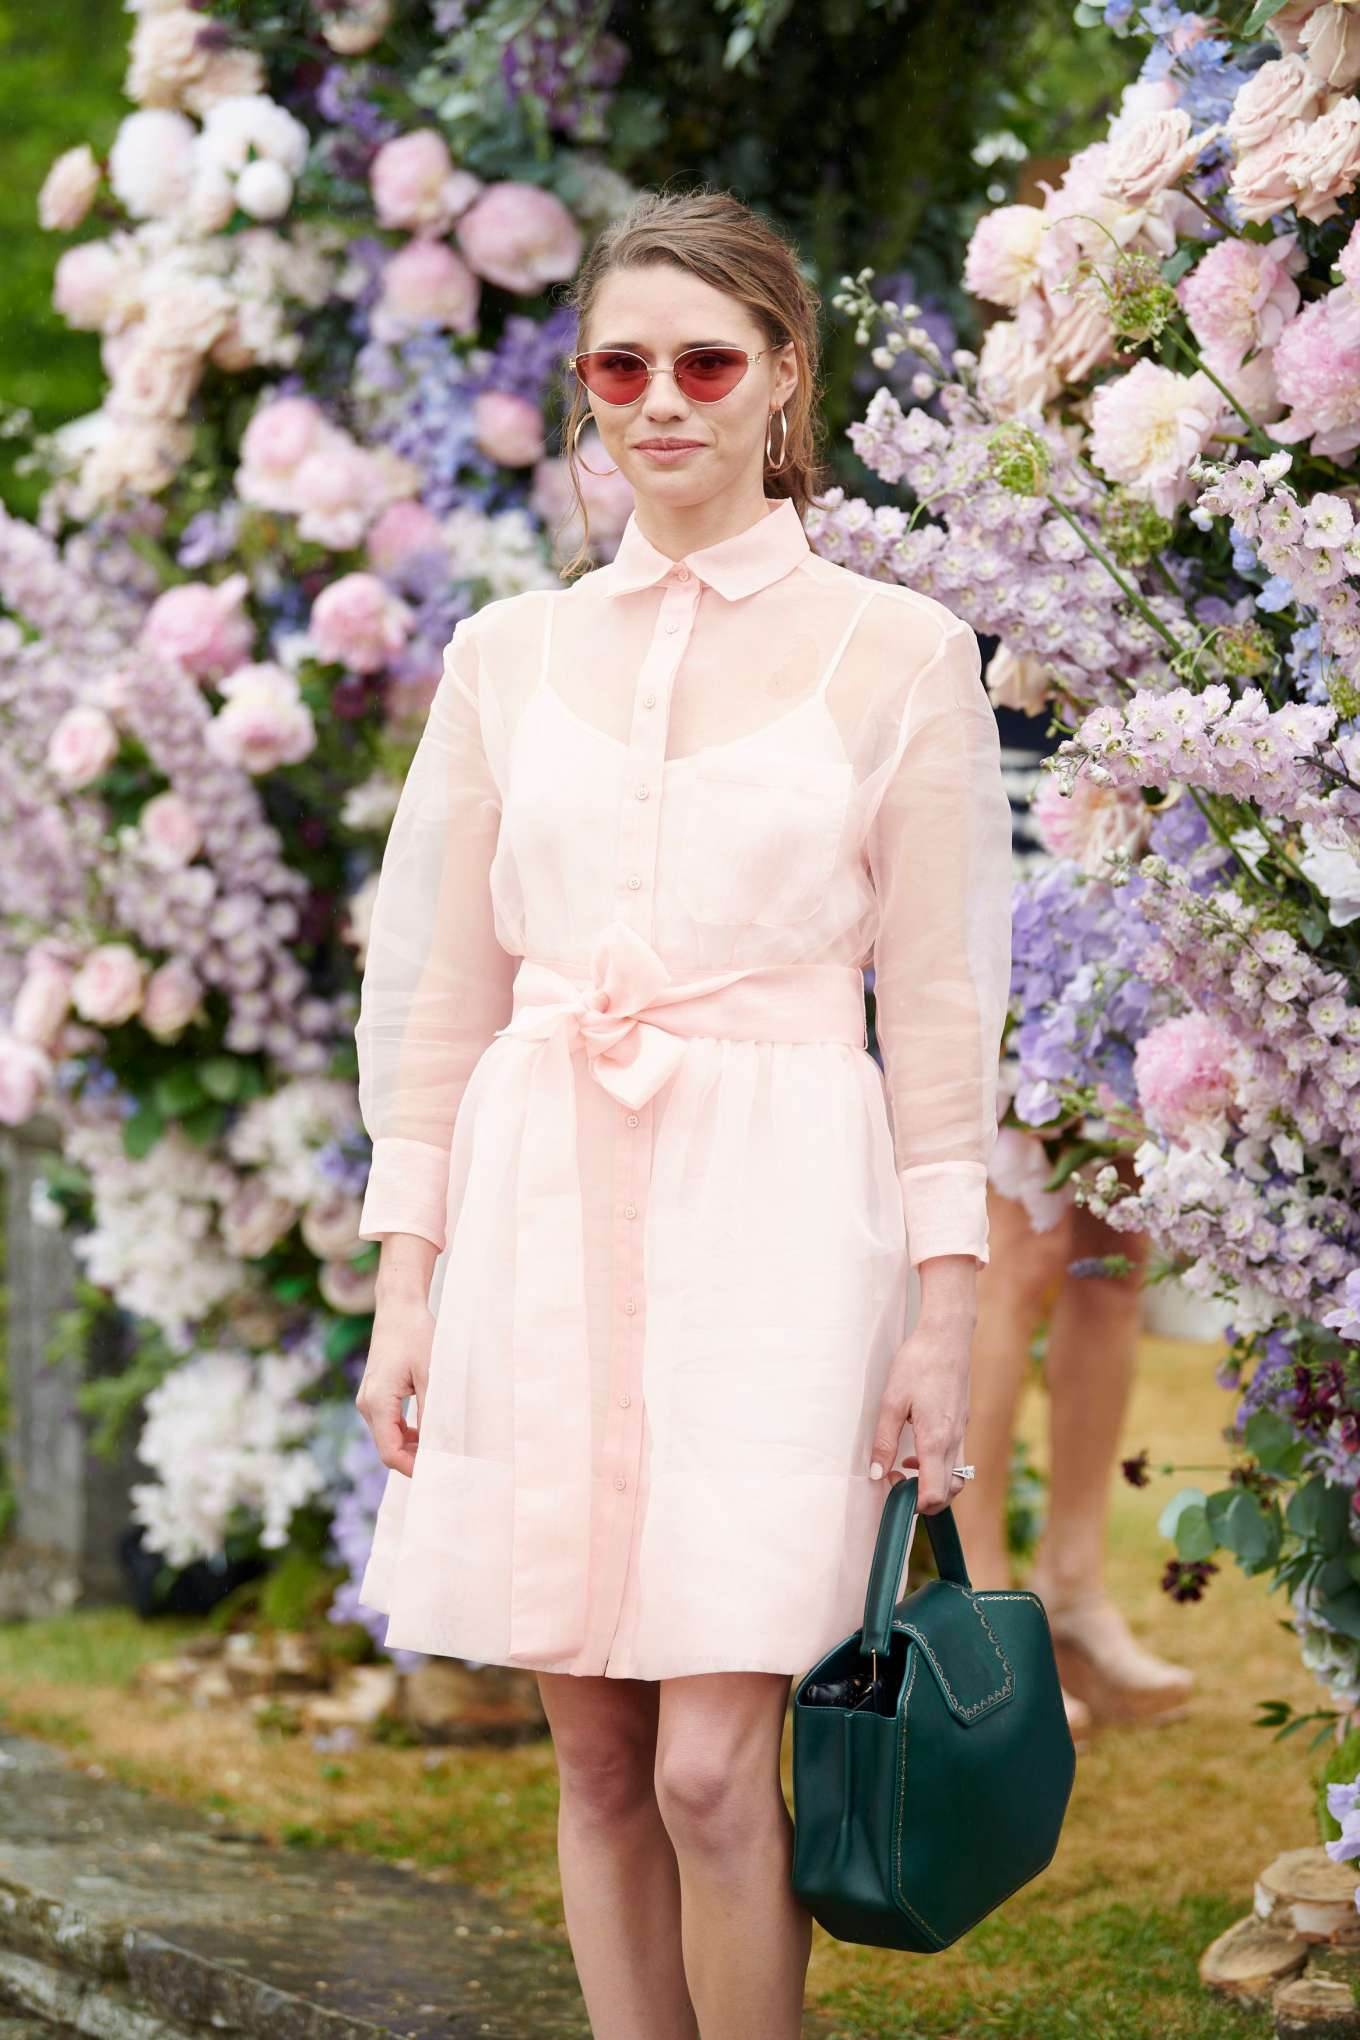 Alessandra Balazs 2019 : Alessandra Balazs – 2019 Goodwood Festival of Speed Cartier Style Et Luxe Enclosure-02